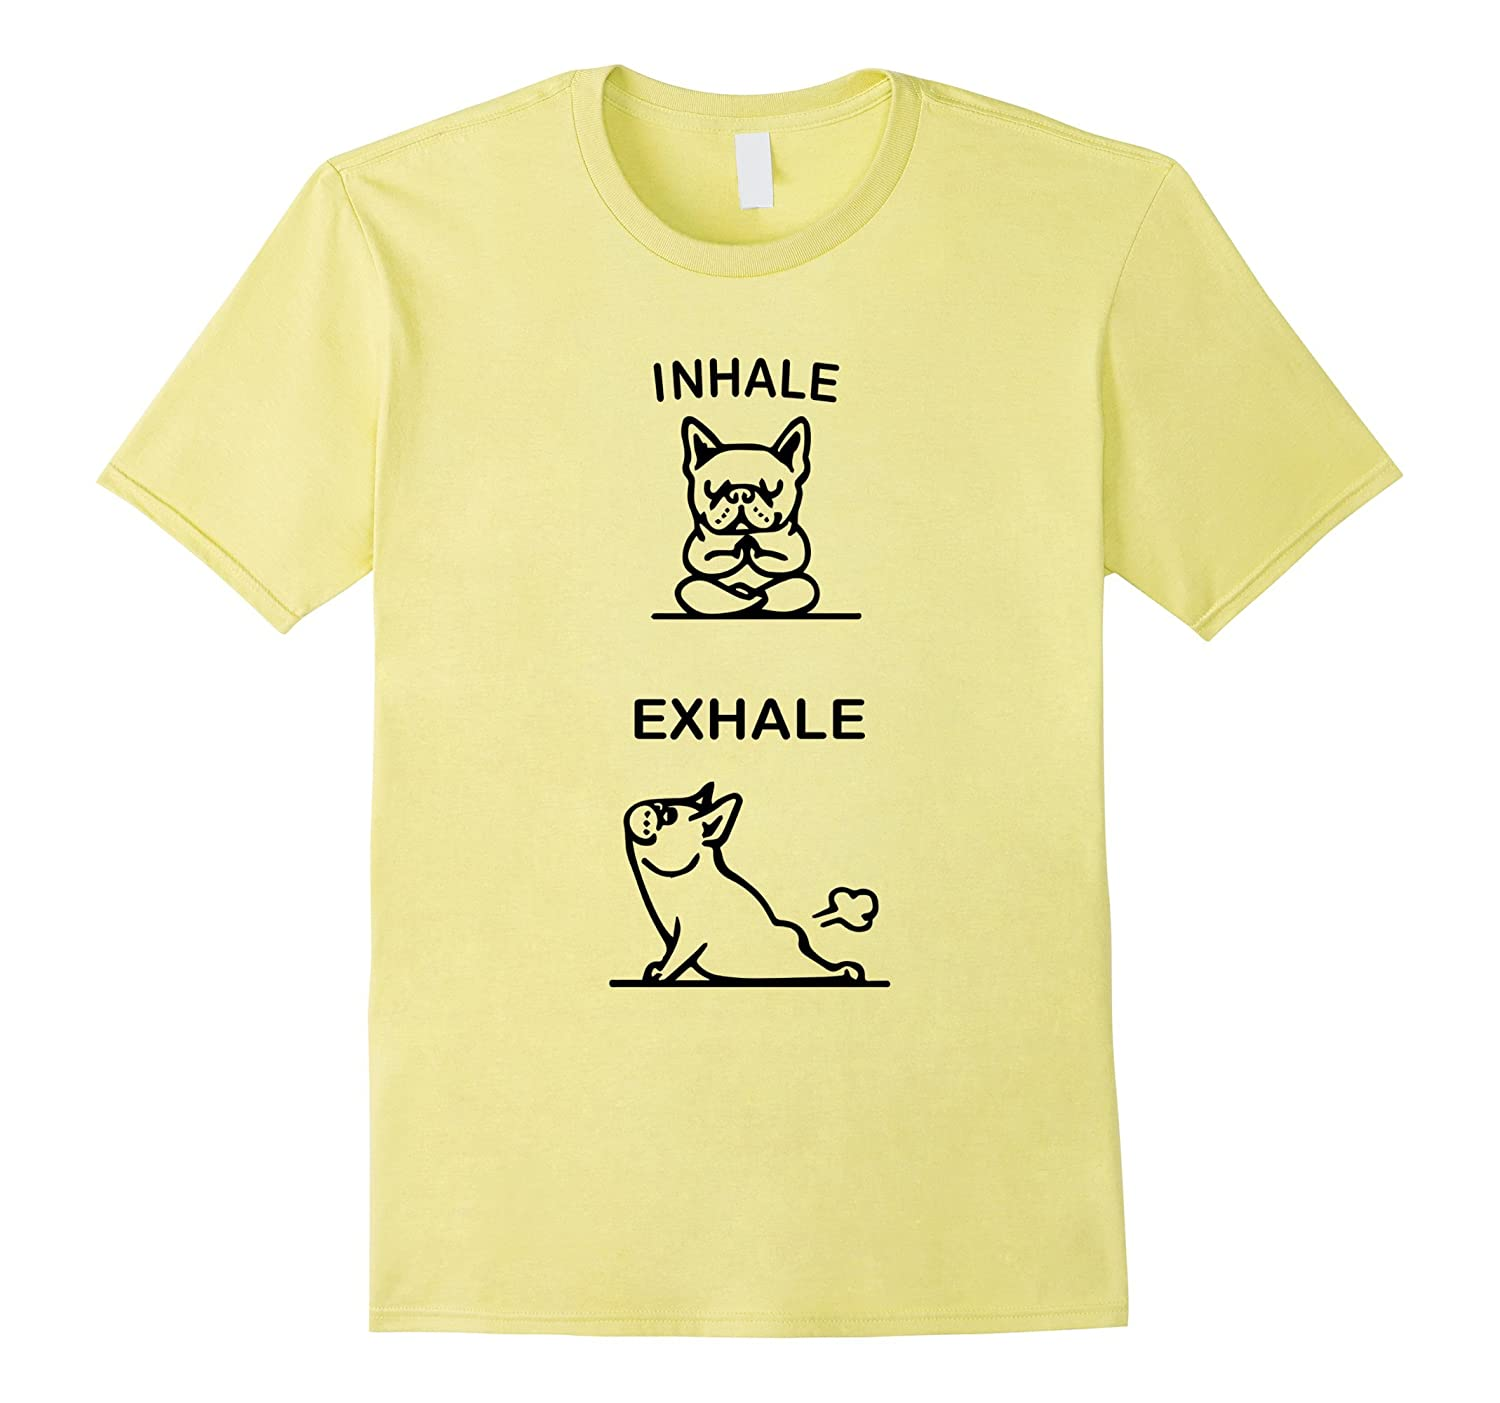 Funny Inhale Exhale Yoga T-shirt